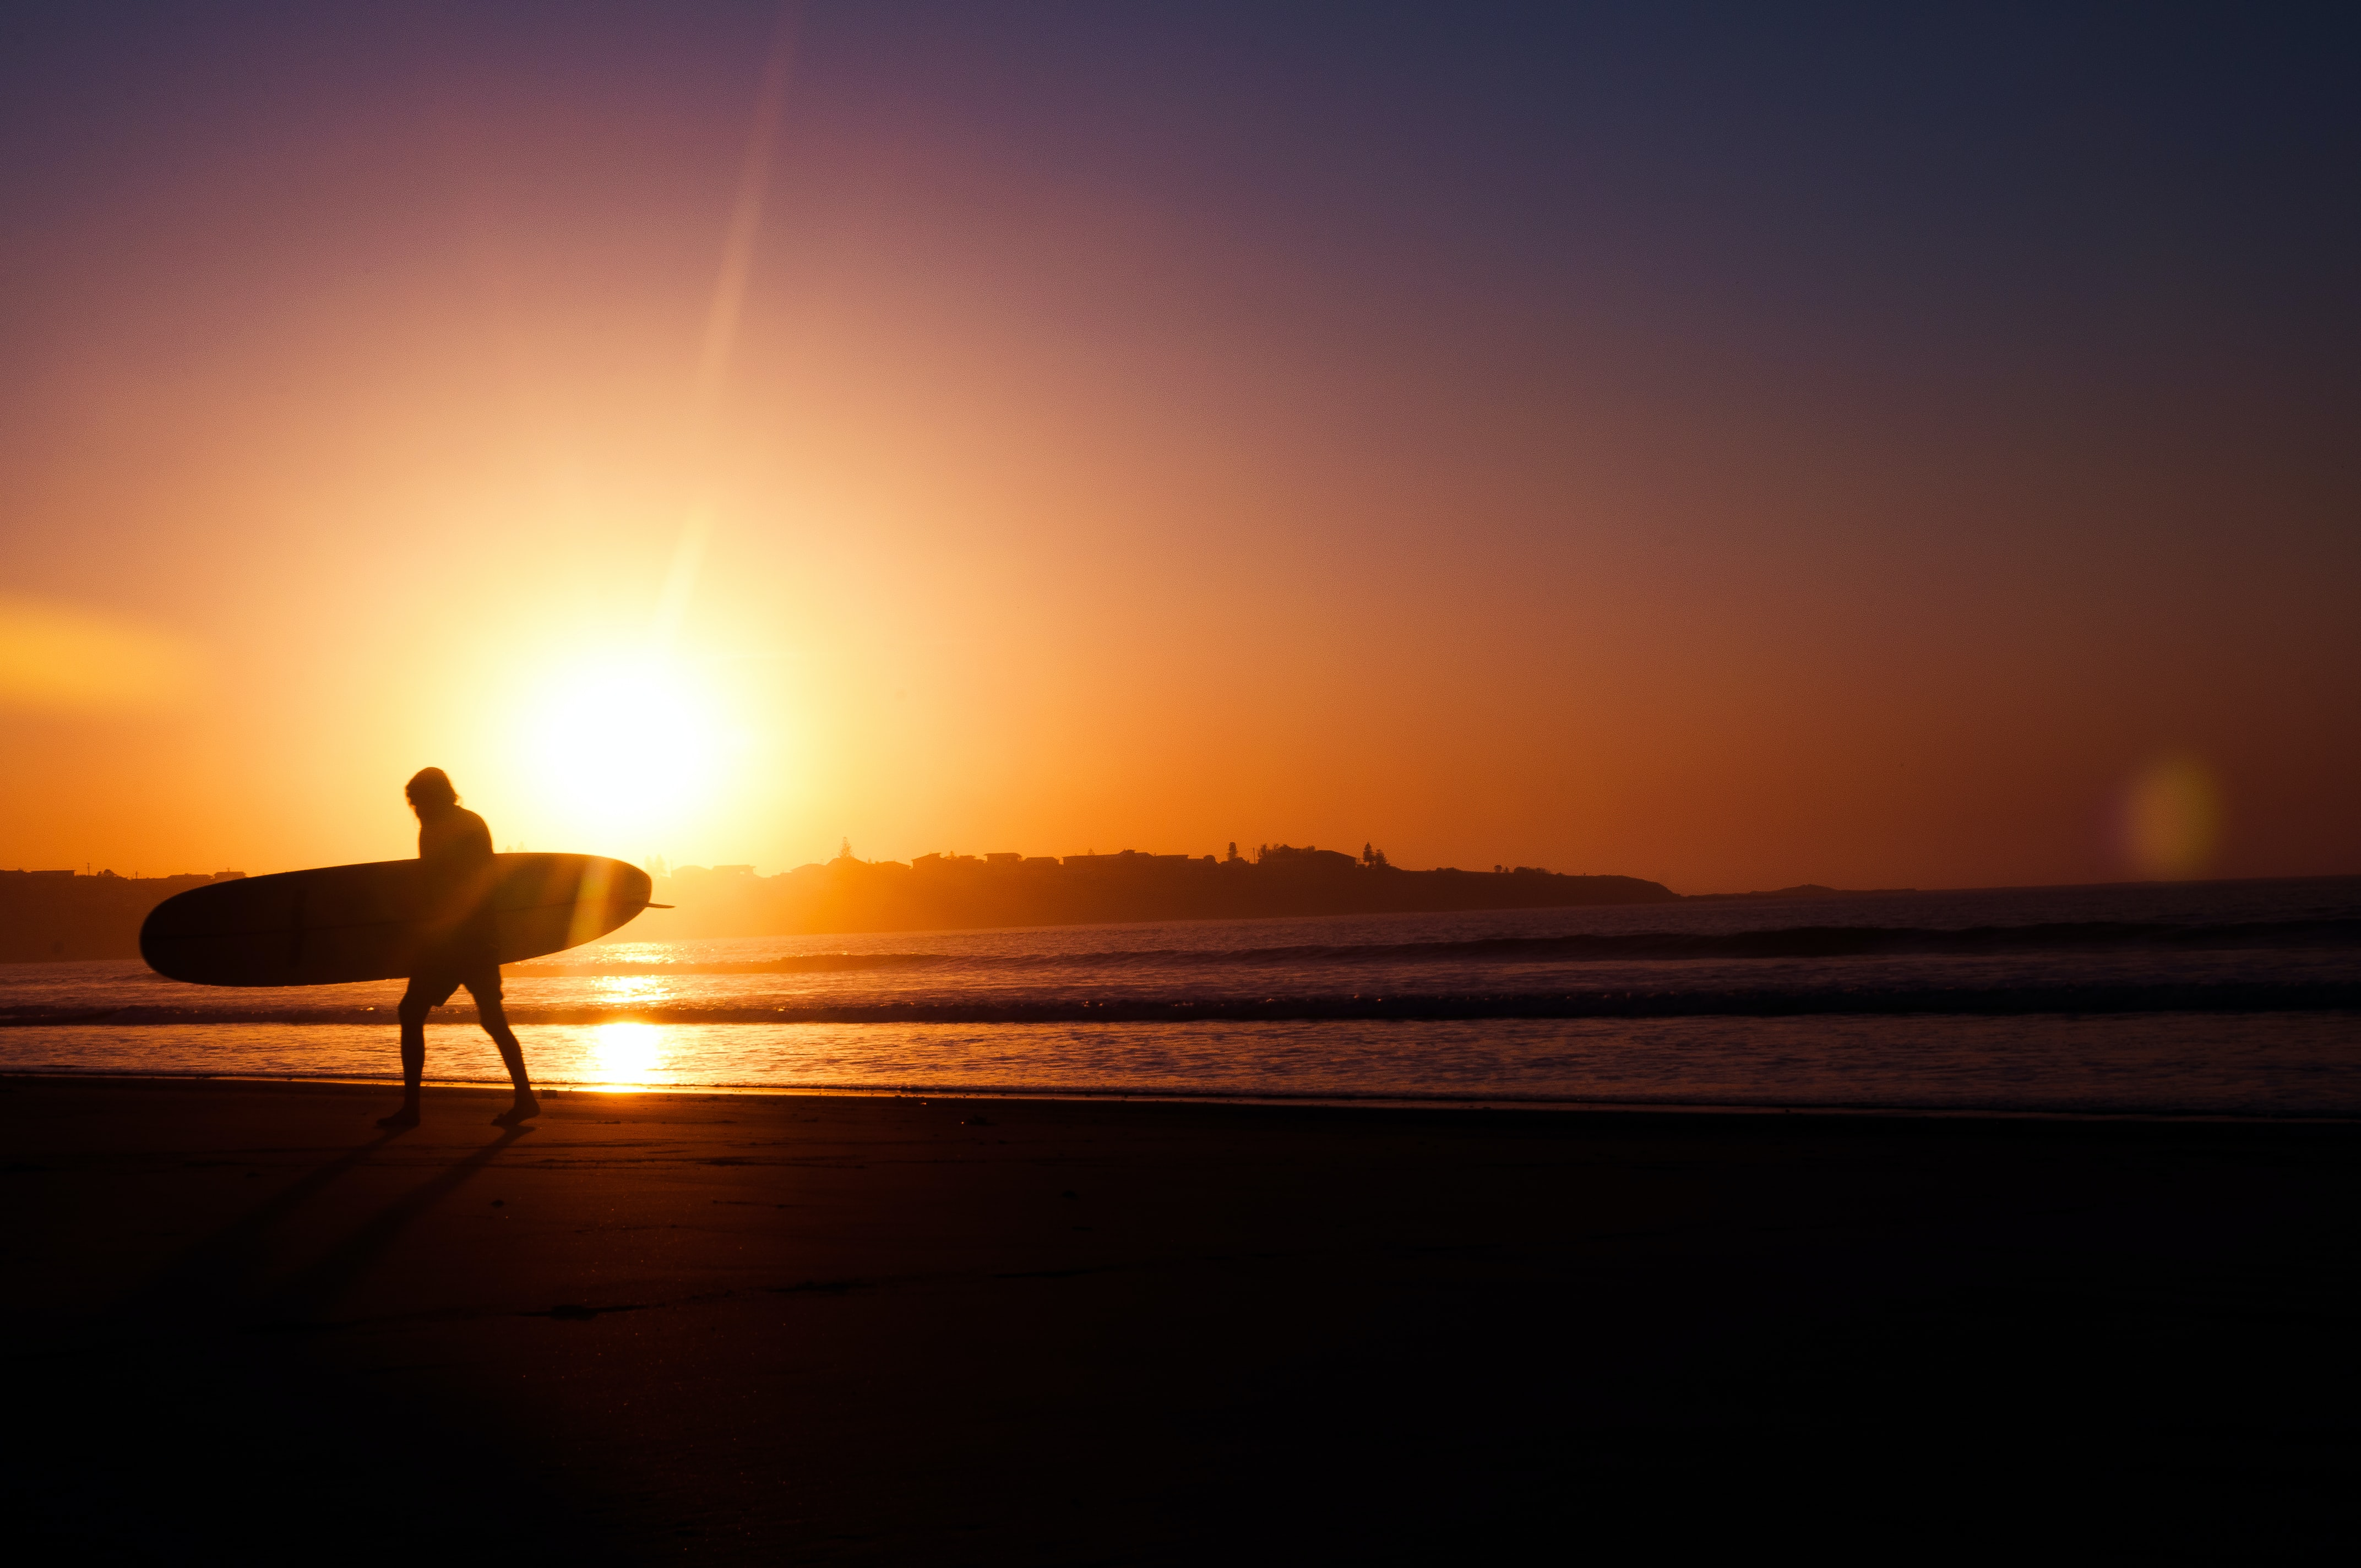 silhouette of man holding surfboard near seashore during sunset